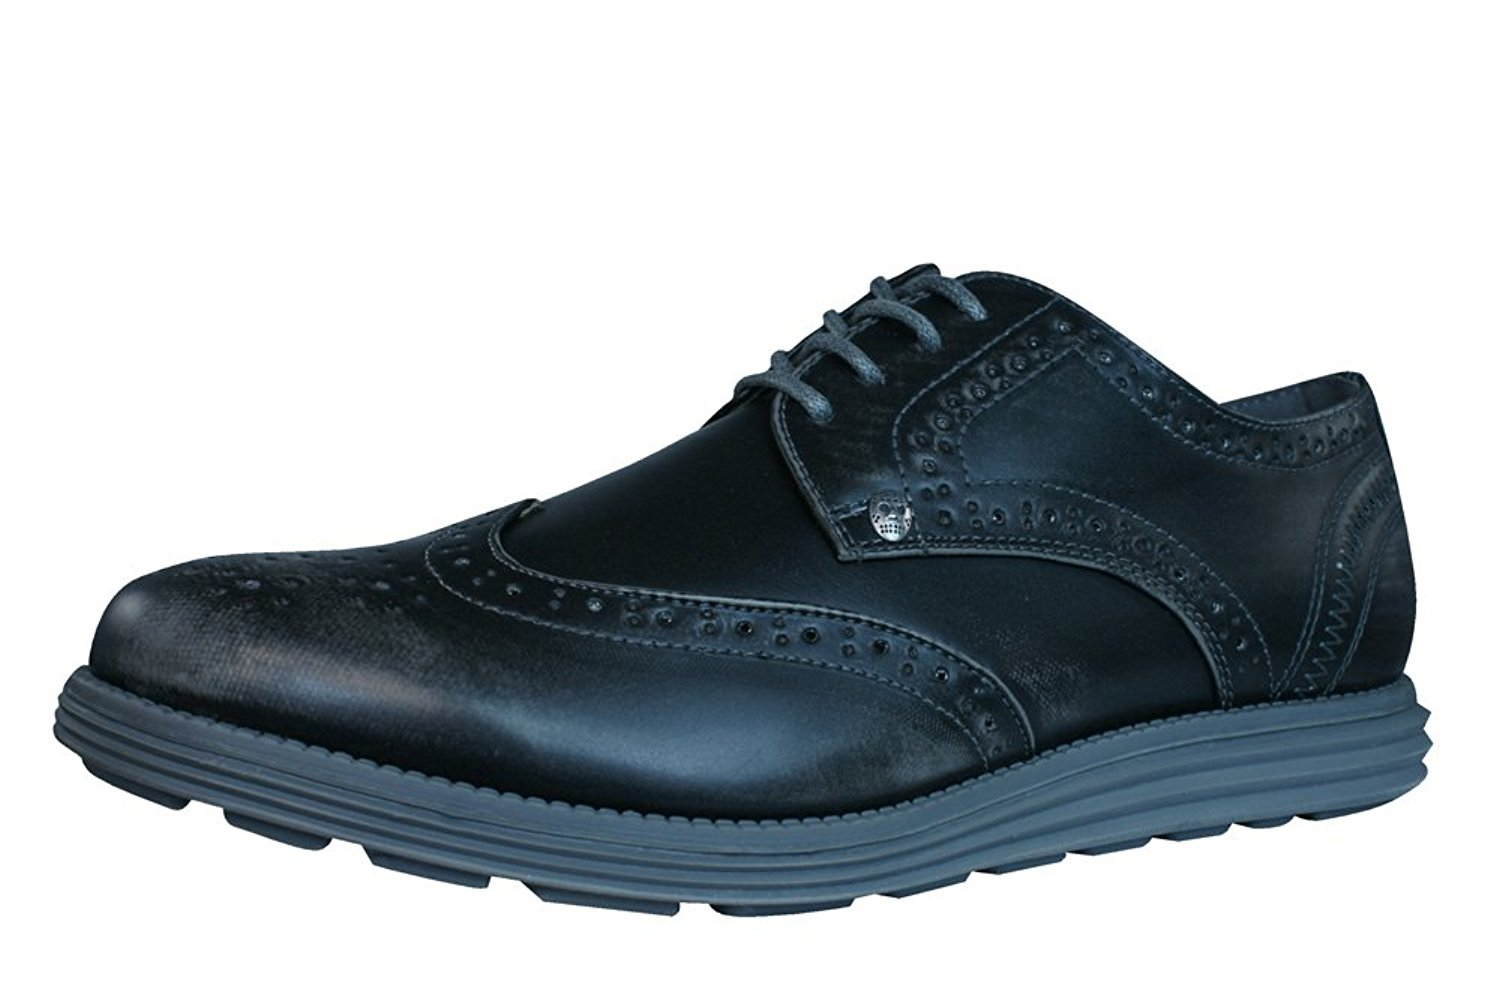 848585be6f0 Get Quotations · Firetrap Bud Mens Lace up Brogues   Shoes